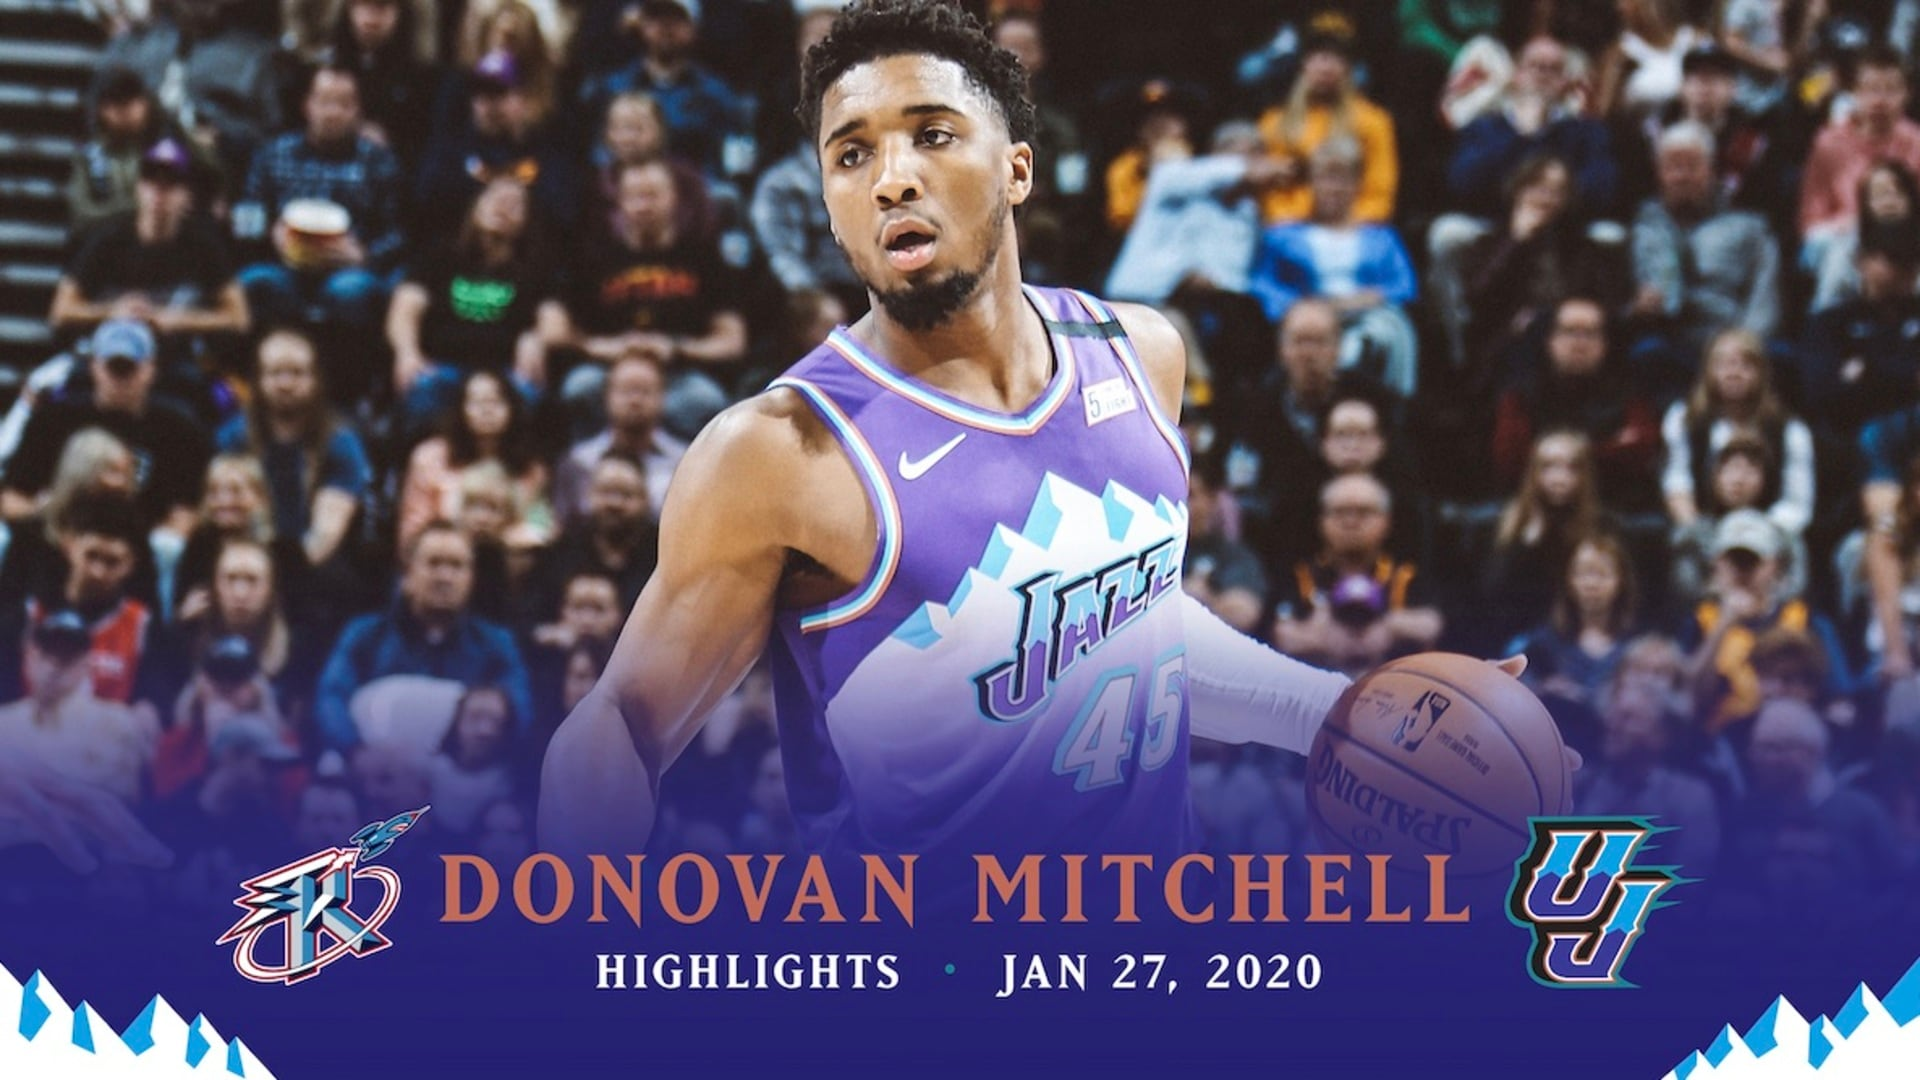 Highlights: Donovan Mitchell — 36 points, 3 rebounds